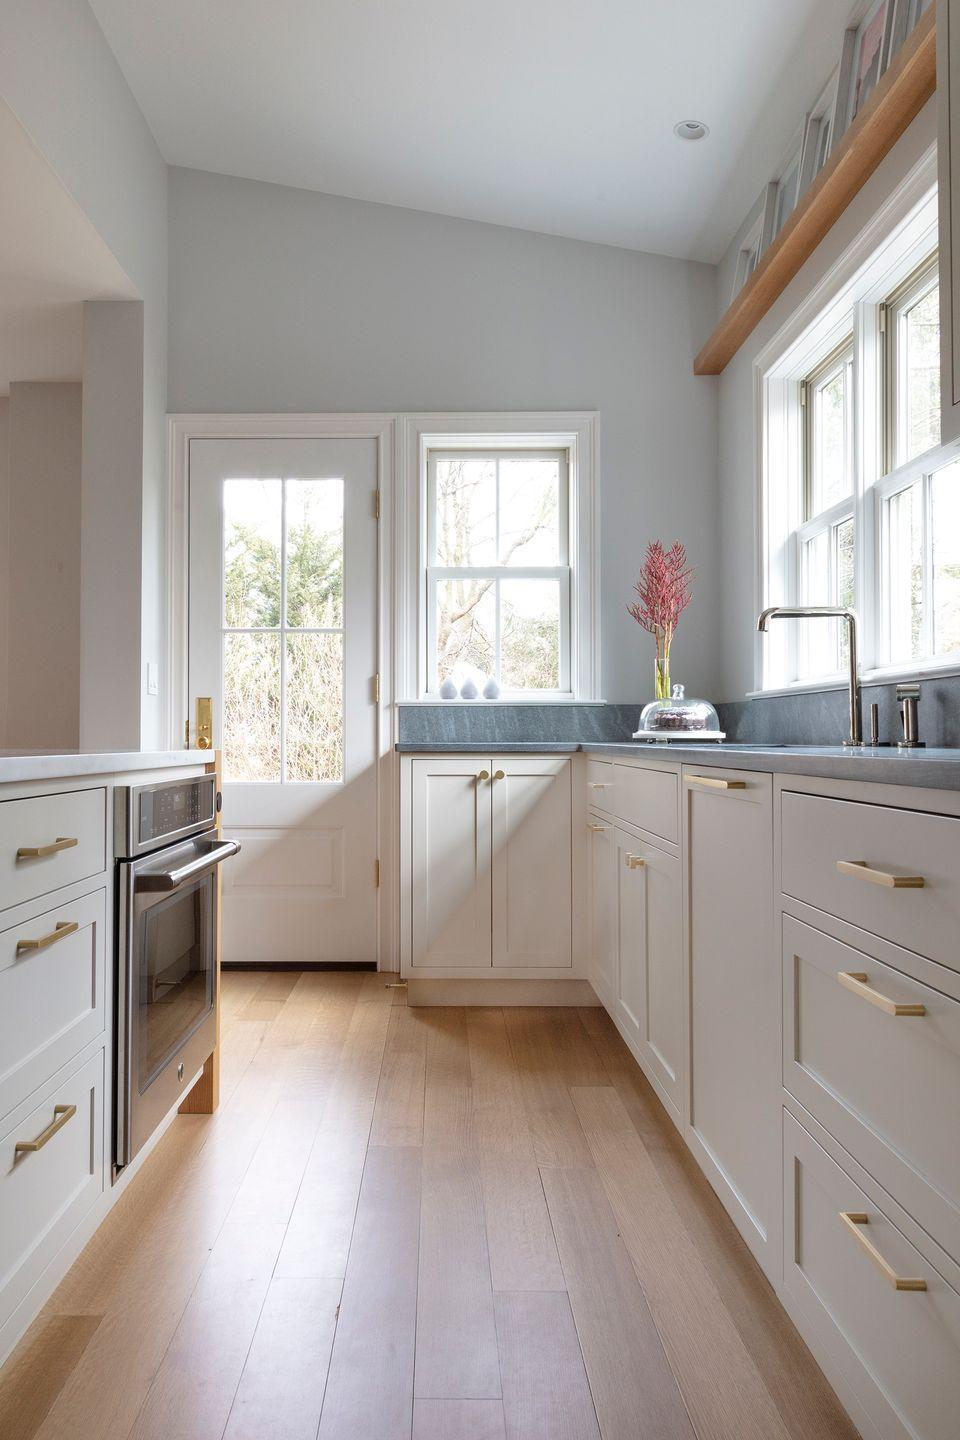 """<p>Gray paint colors, like Farrow & Ball's Dimpse, are beyond versatile, according to architect and designer <a href=""""http://mkoconnor.com/"""" rel=""""nofollow noopener"""" target=""""_blank"""" data-ylk=""""slk:Mindy O'Connor"""" class=""""link rapid-noclick-resp"""">Mindy O'Connor</a>. """"Dimpse is a cool pale gray that works as a terrific neutral in lieu of white in modern space. It is a perfect backdrop for kitchen cabinetry or against other natural wood and stone elements without overwhelming the design. While setting a more cool tone, it is not stark.""""</p><p><a class=""""link rapid-noclick-resp"""" href=""""https://go.redirectingat.com?id=74968X1596630&url=https%3A%2F%2Fwww.farrow-ball.com%2Fen-us%2Fpaint-colours%2Fdimpse&sref=https%3A%2F%2Fwww.goodhousekeeping.com%2Fhome%2Fdecorating-ideas%2Ftips%2Fg3902%2Finterior-paint-colors%2F"""" rel=""""nofollow noopener"""" target=""""_blank"""" data-ylk=""""slk:SHOP NOW"""">SHOP NOW</a></p>"""